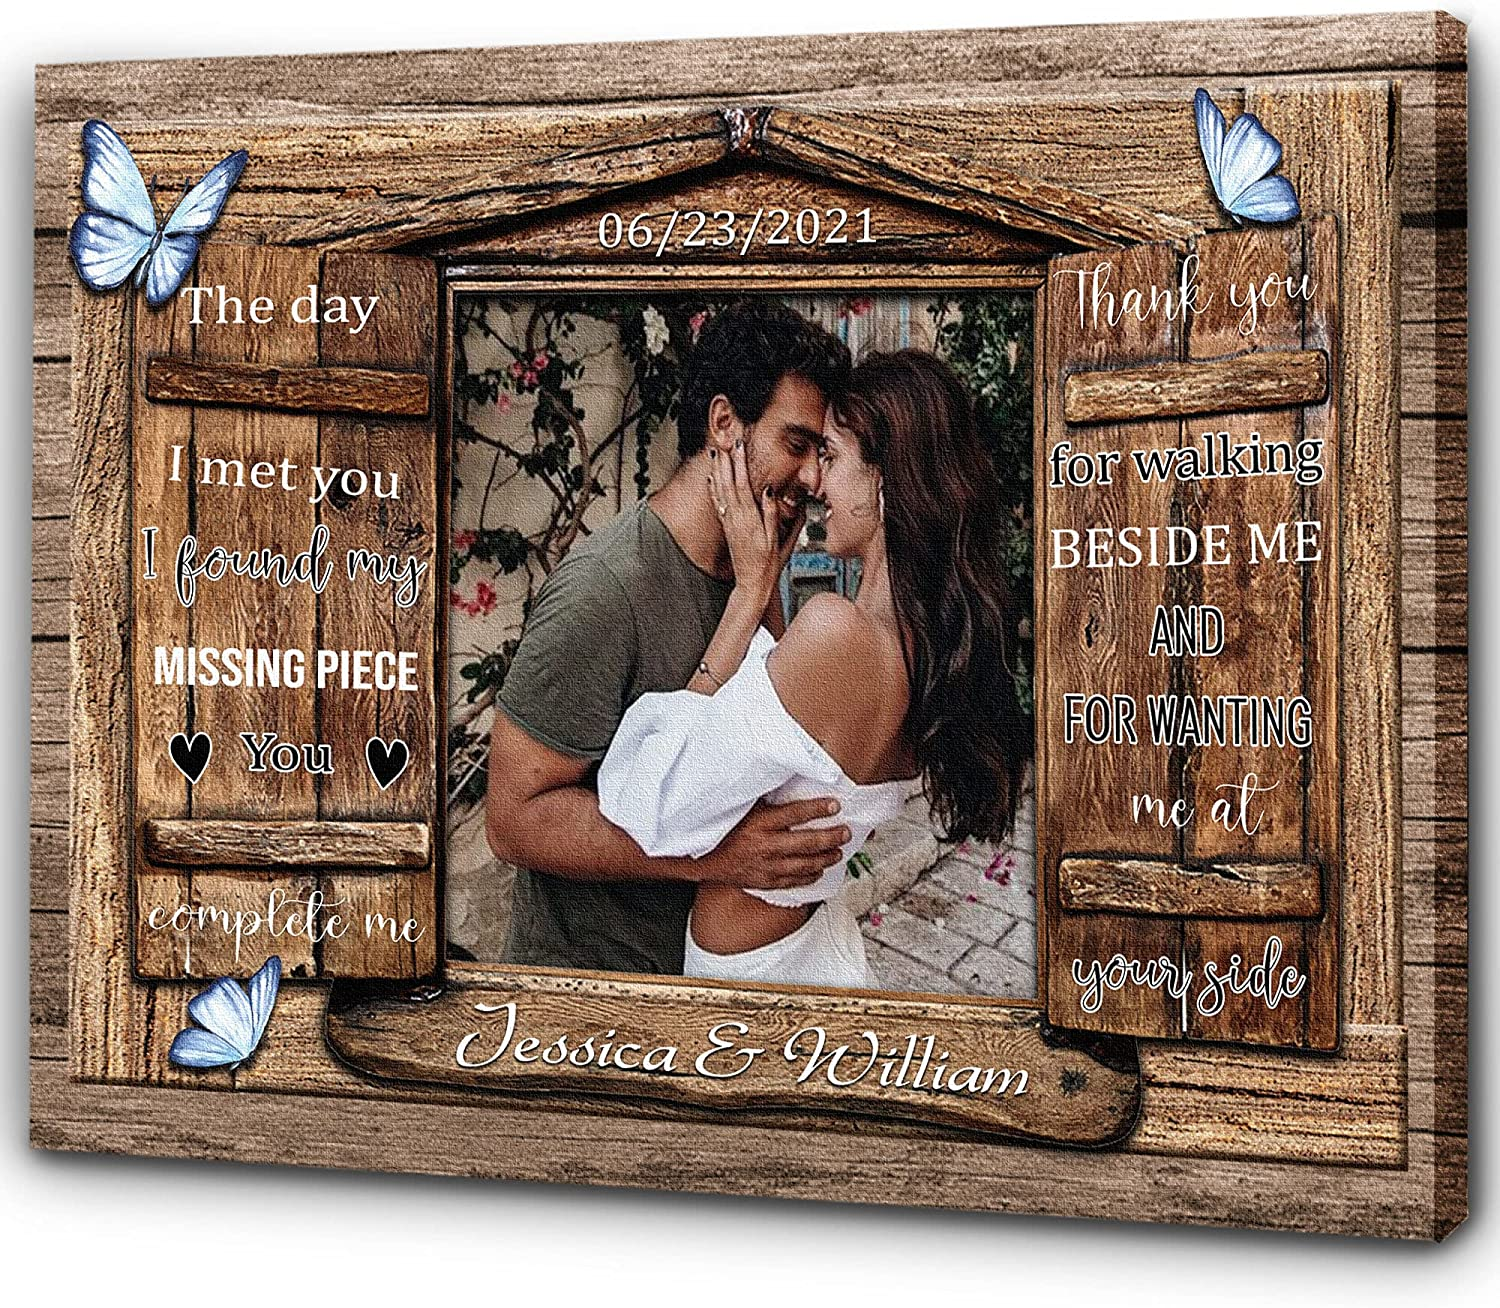 Personalized Canvas Year-end gift Couple Photo Reservation Gift W Romantic Wedding